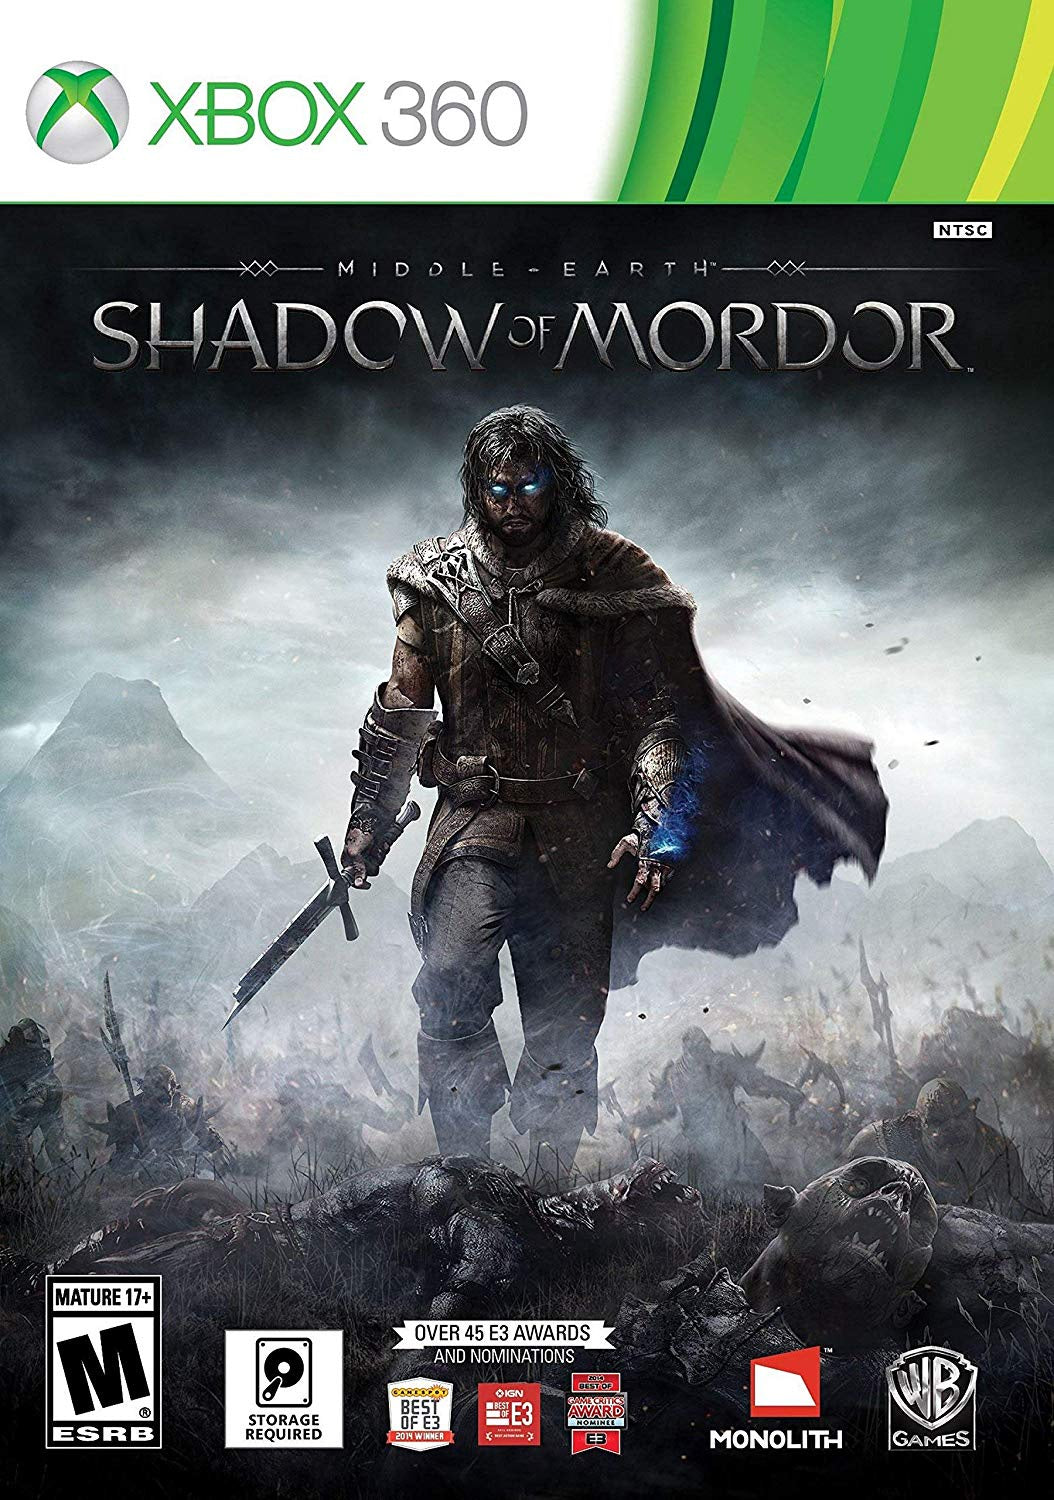 Middle Earth: Shadow of Mordor - Xbox 360 (Pre-owned)